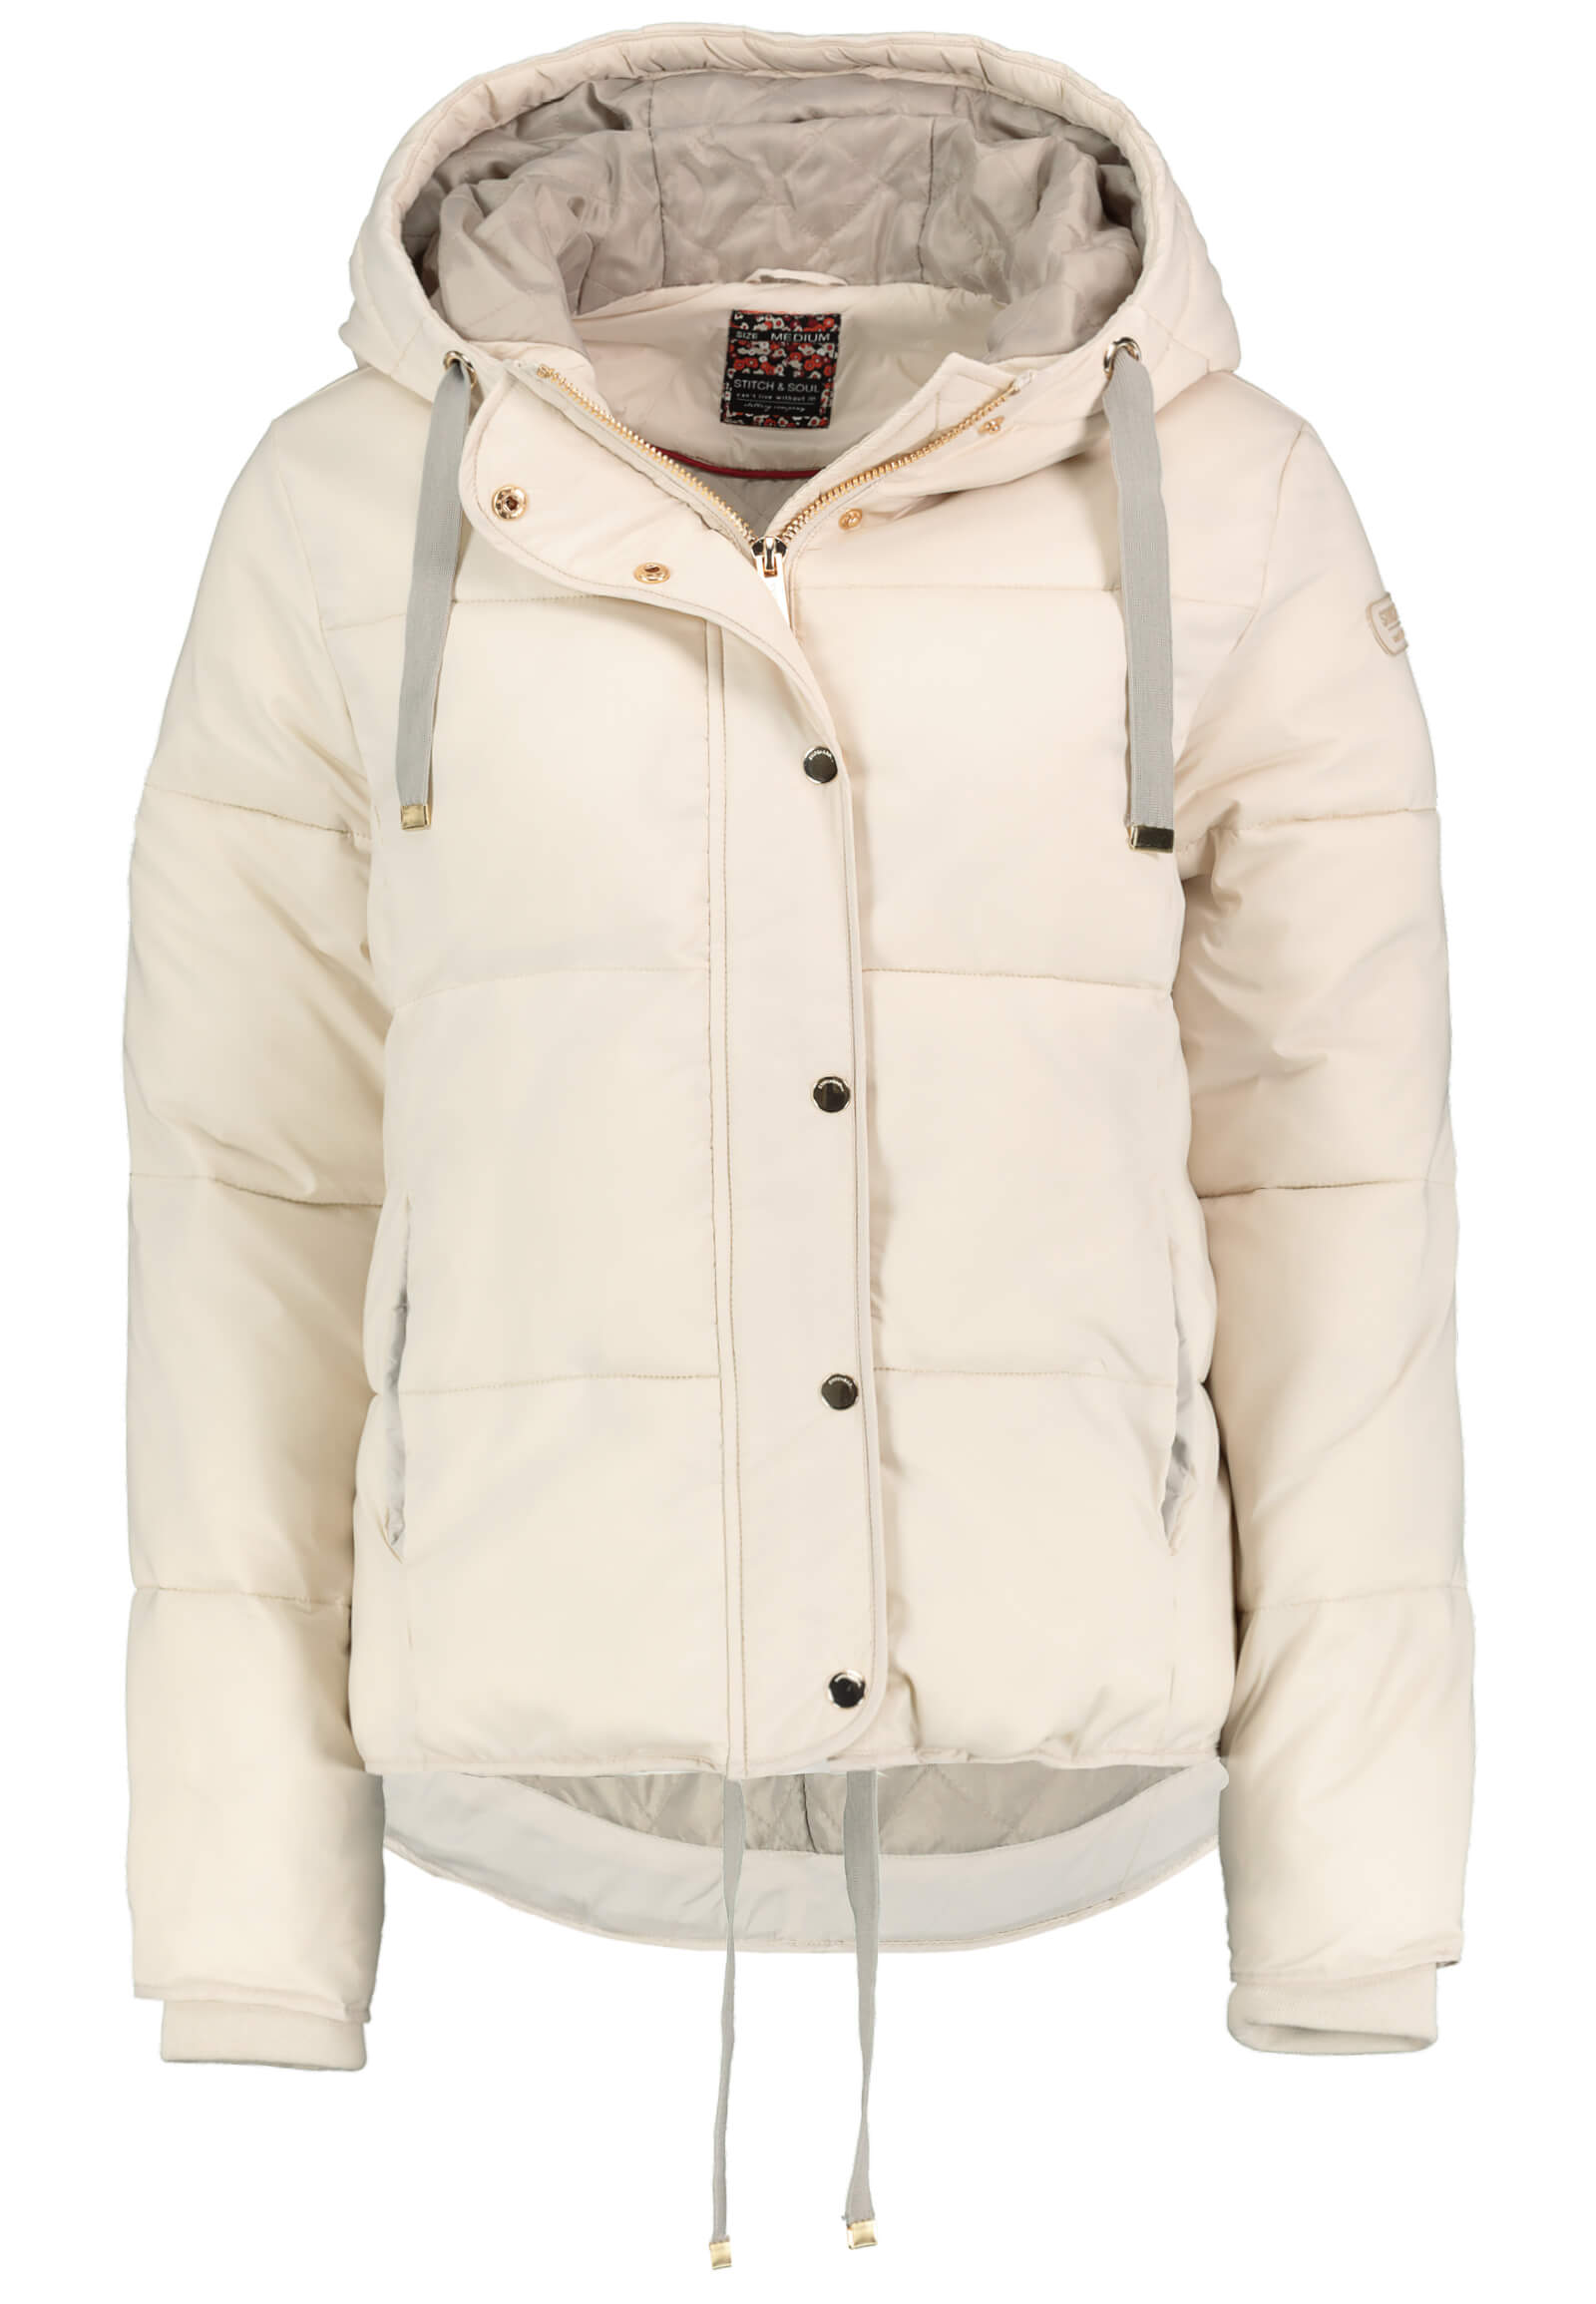 Pufferjacket beige